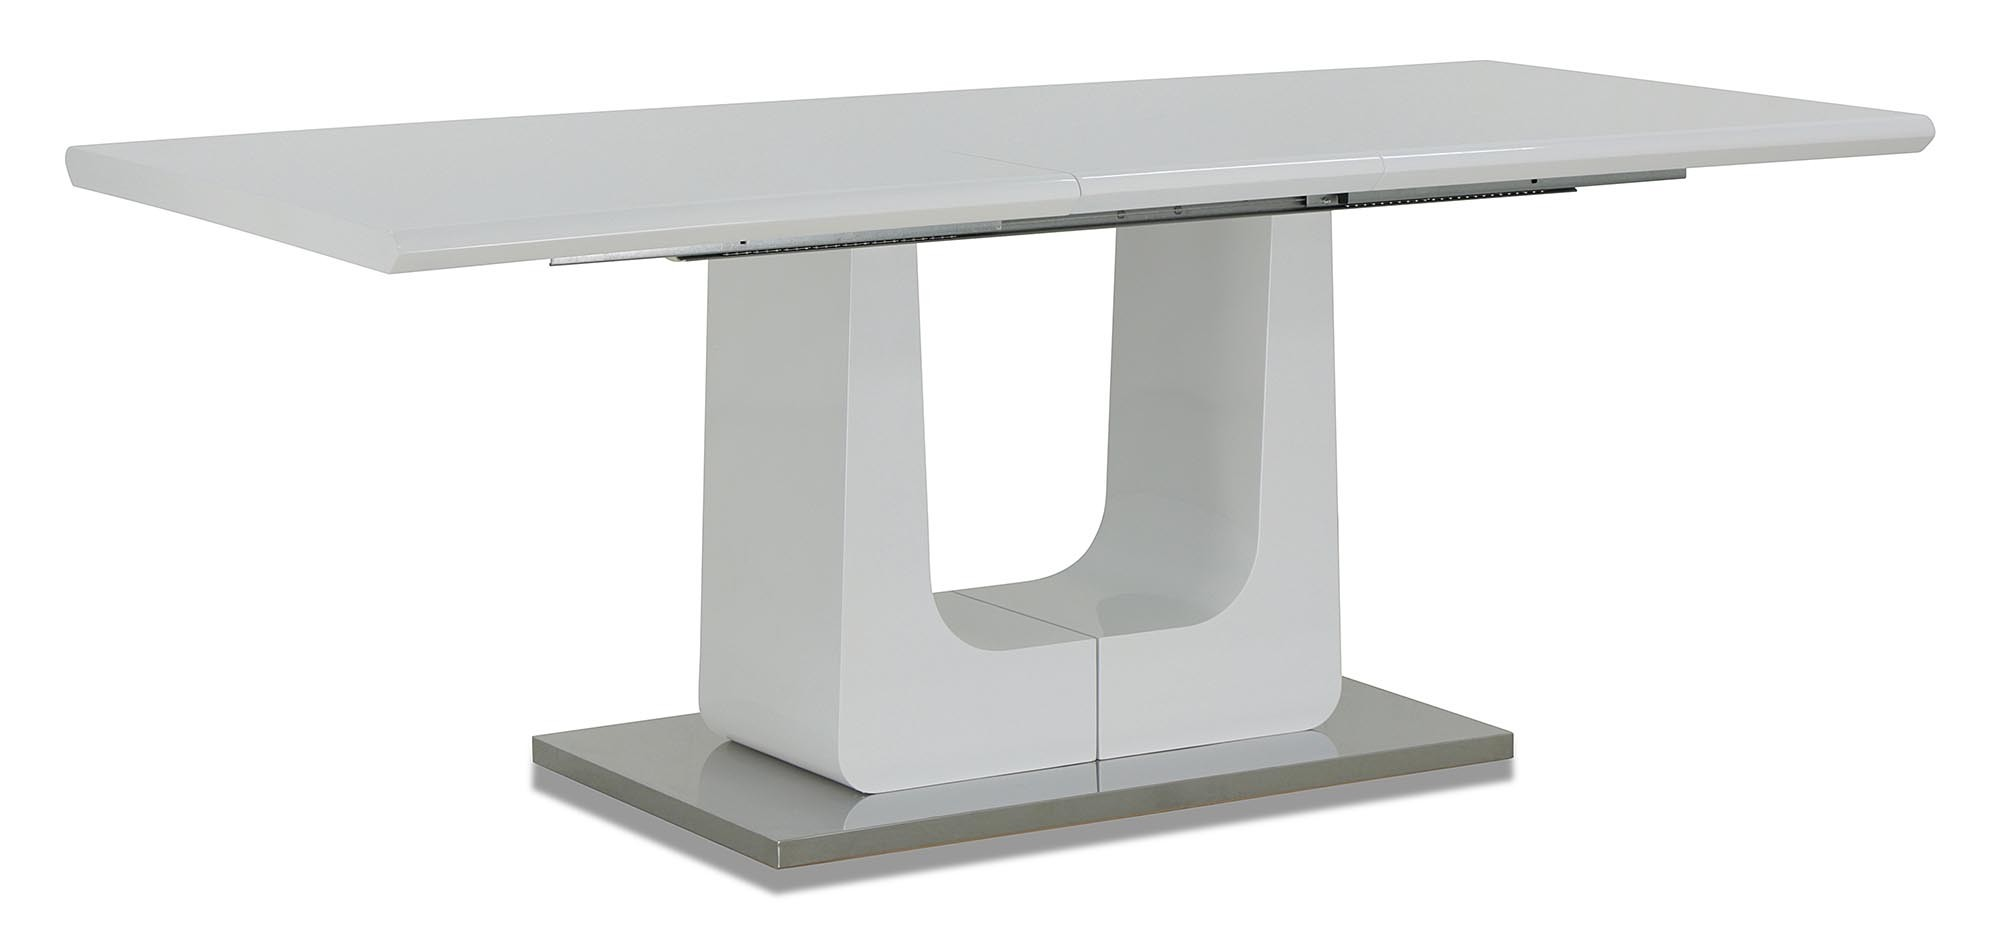 Dorian extendable dining table white